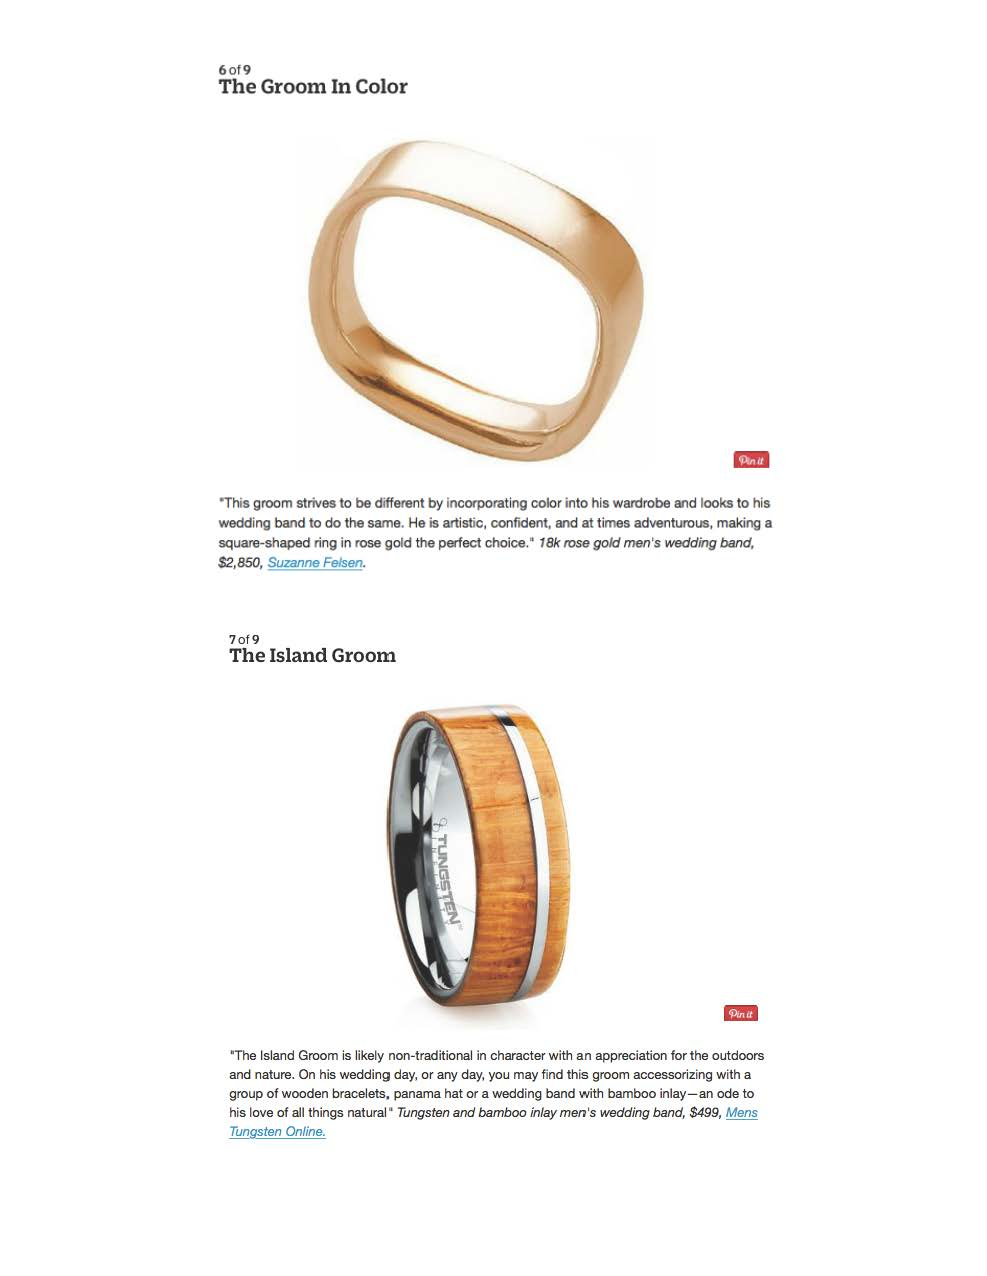 About.com - 12-14-15 wedding bands_Page_4.jpg